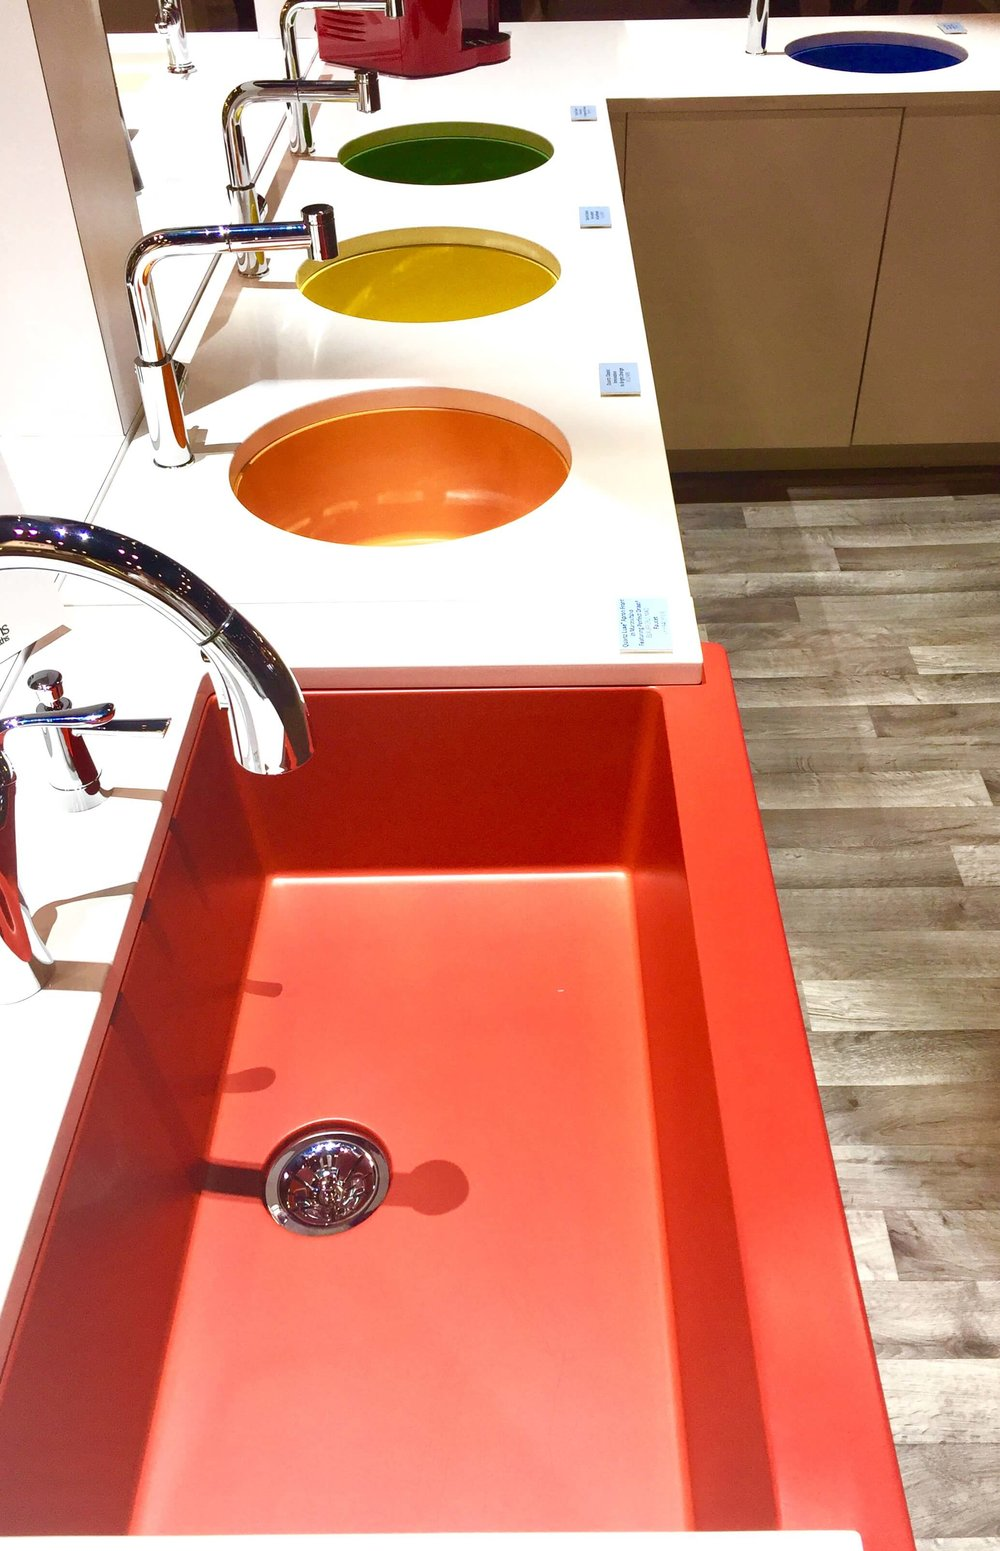 Bright colored sinks made a debut at Elkay.